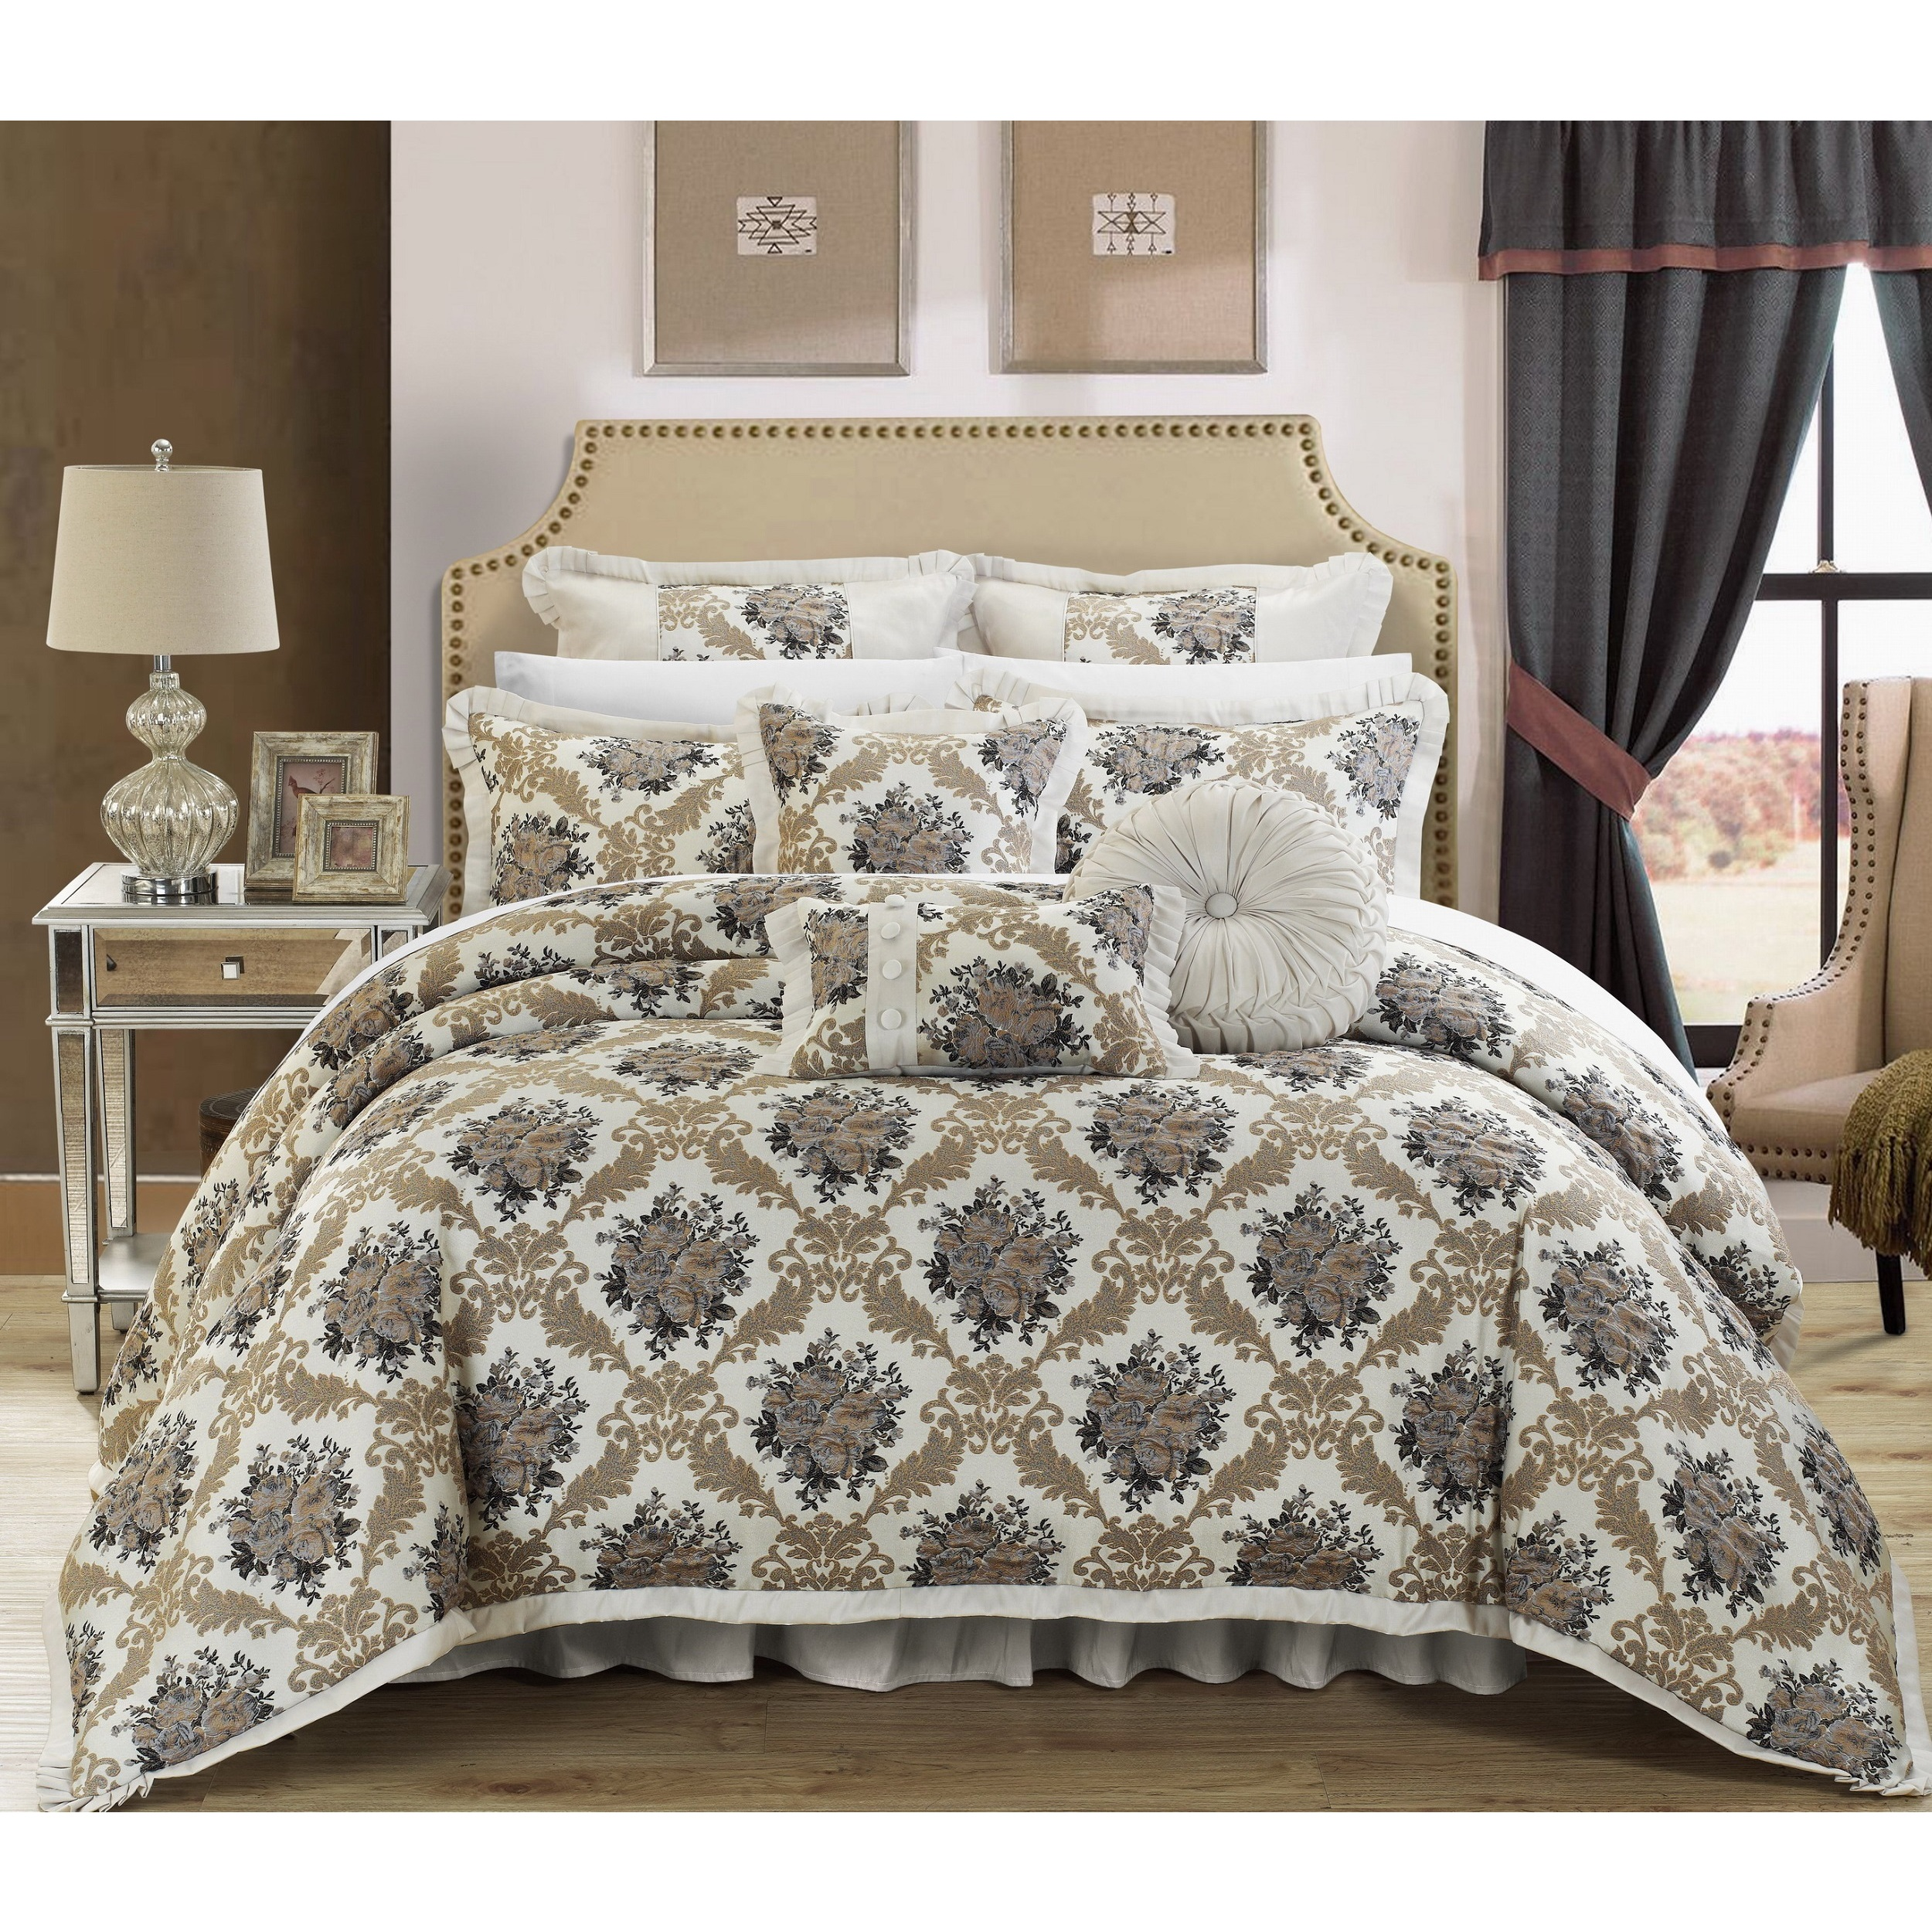 bedroom comforter kitchen quality blue decorator como com piece home motif amazon fabric chic king pillows upholstery dp set jacquard ensemble